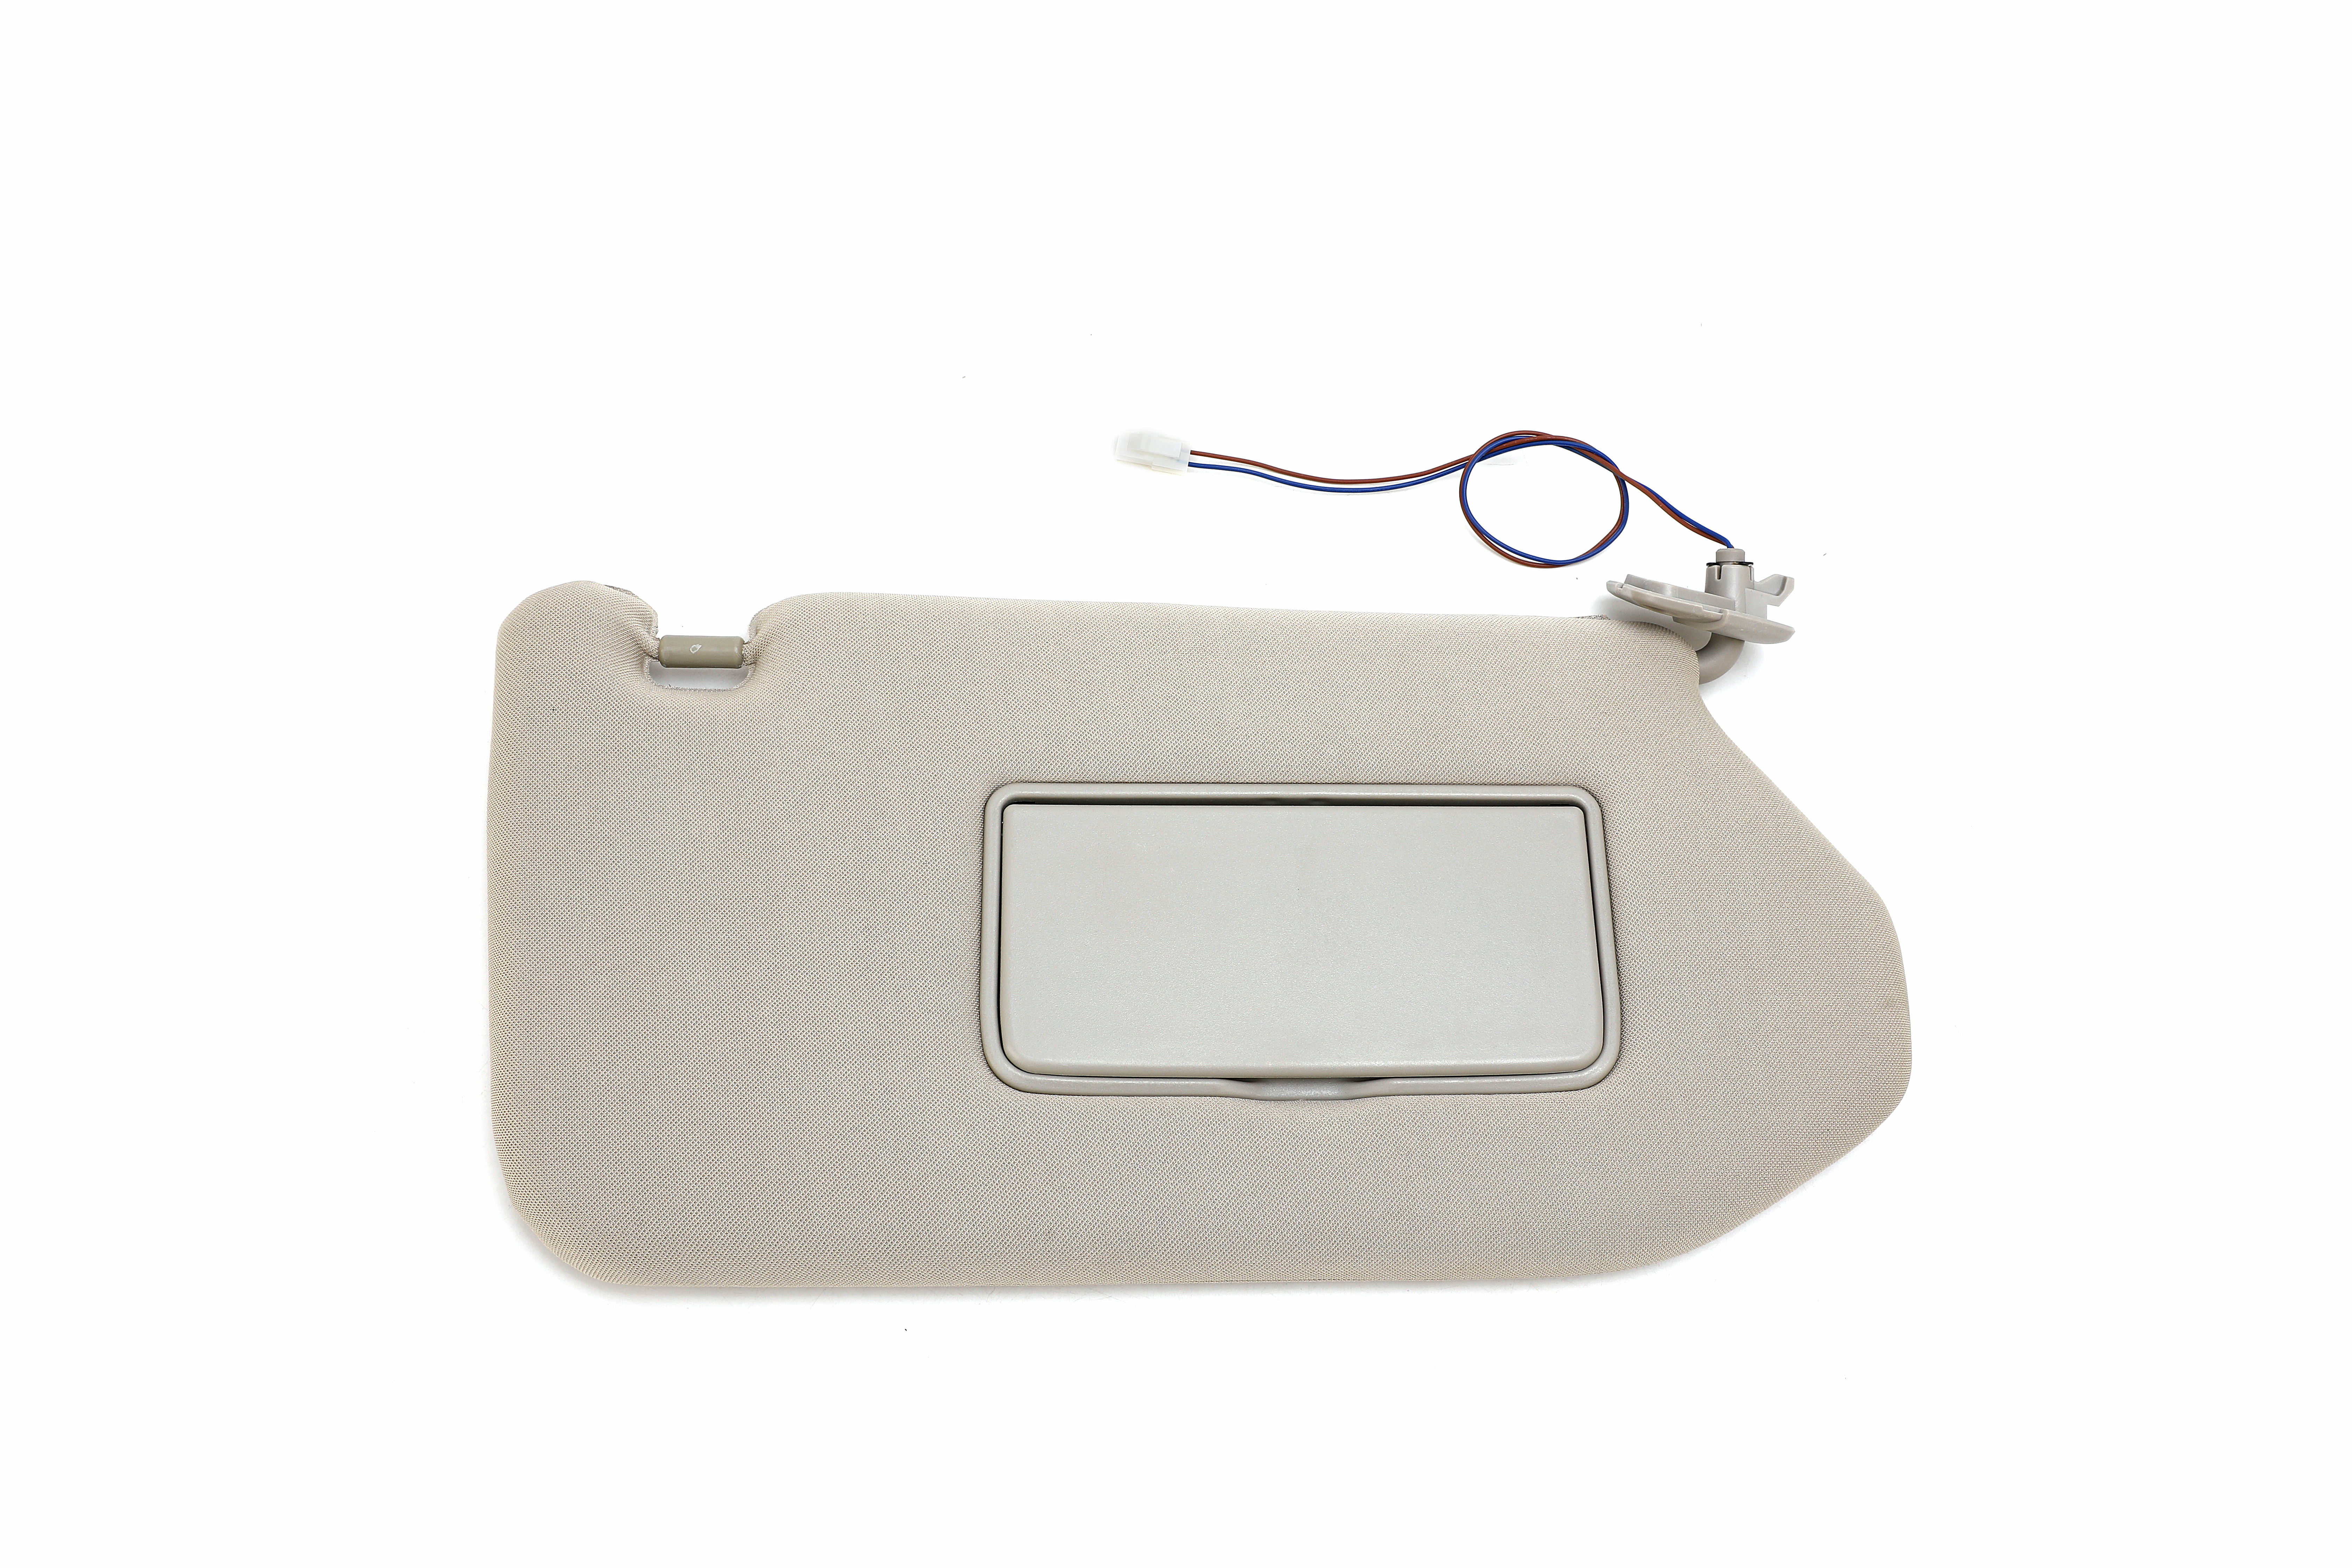 Passenger Side Sun Visor Right Side Tan - Fits Nissan Pathfinder, Infiniti QX60, JX35 Image